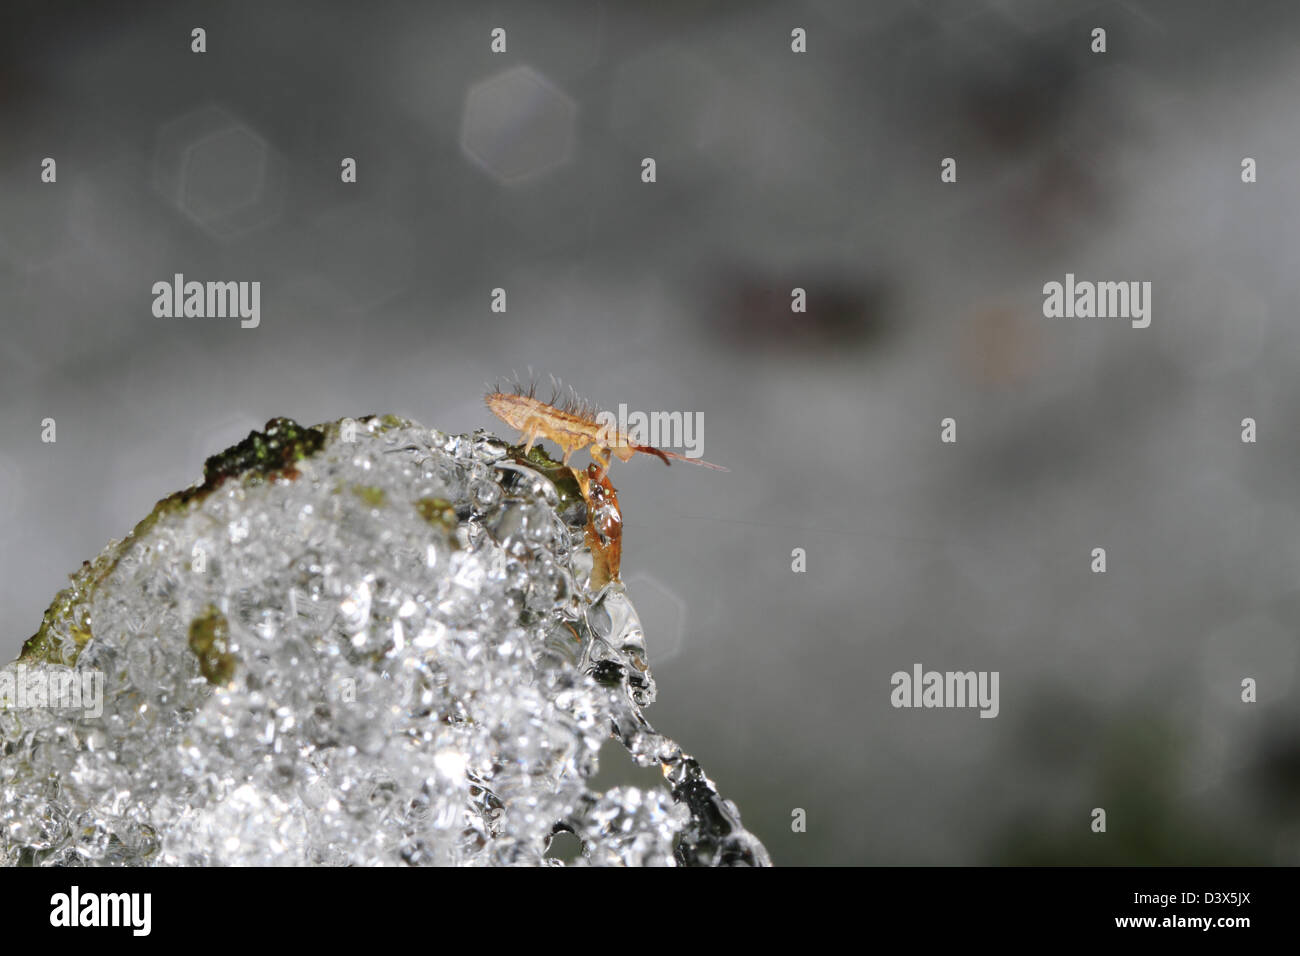 Even in winter small invertebrates are active. Here a springtail (Collembola) is resting on melting snow. - Stock Image